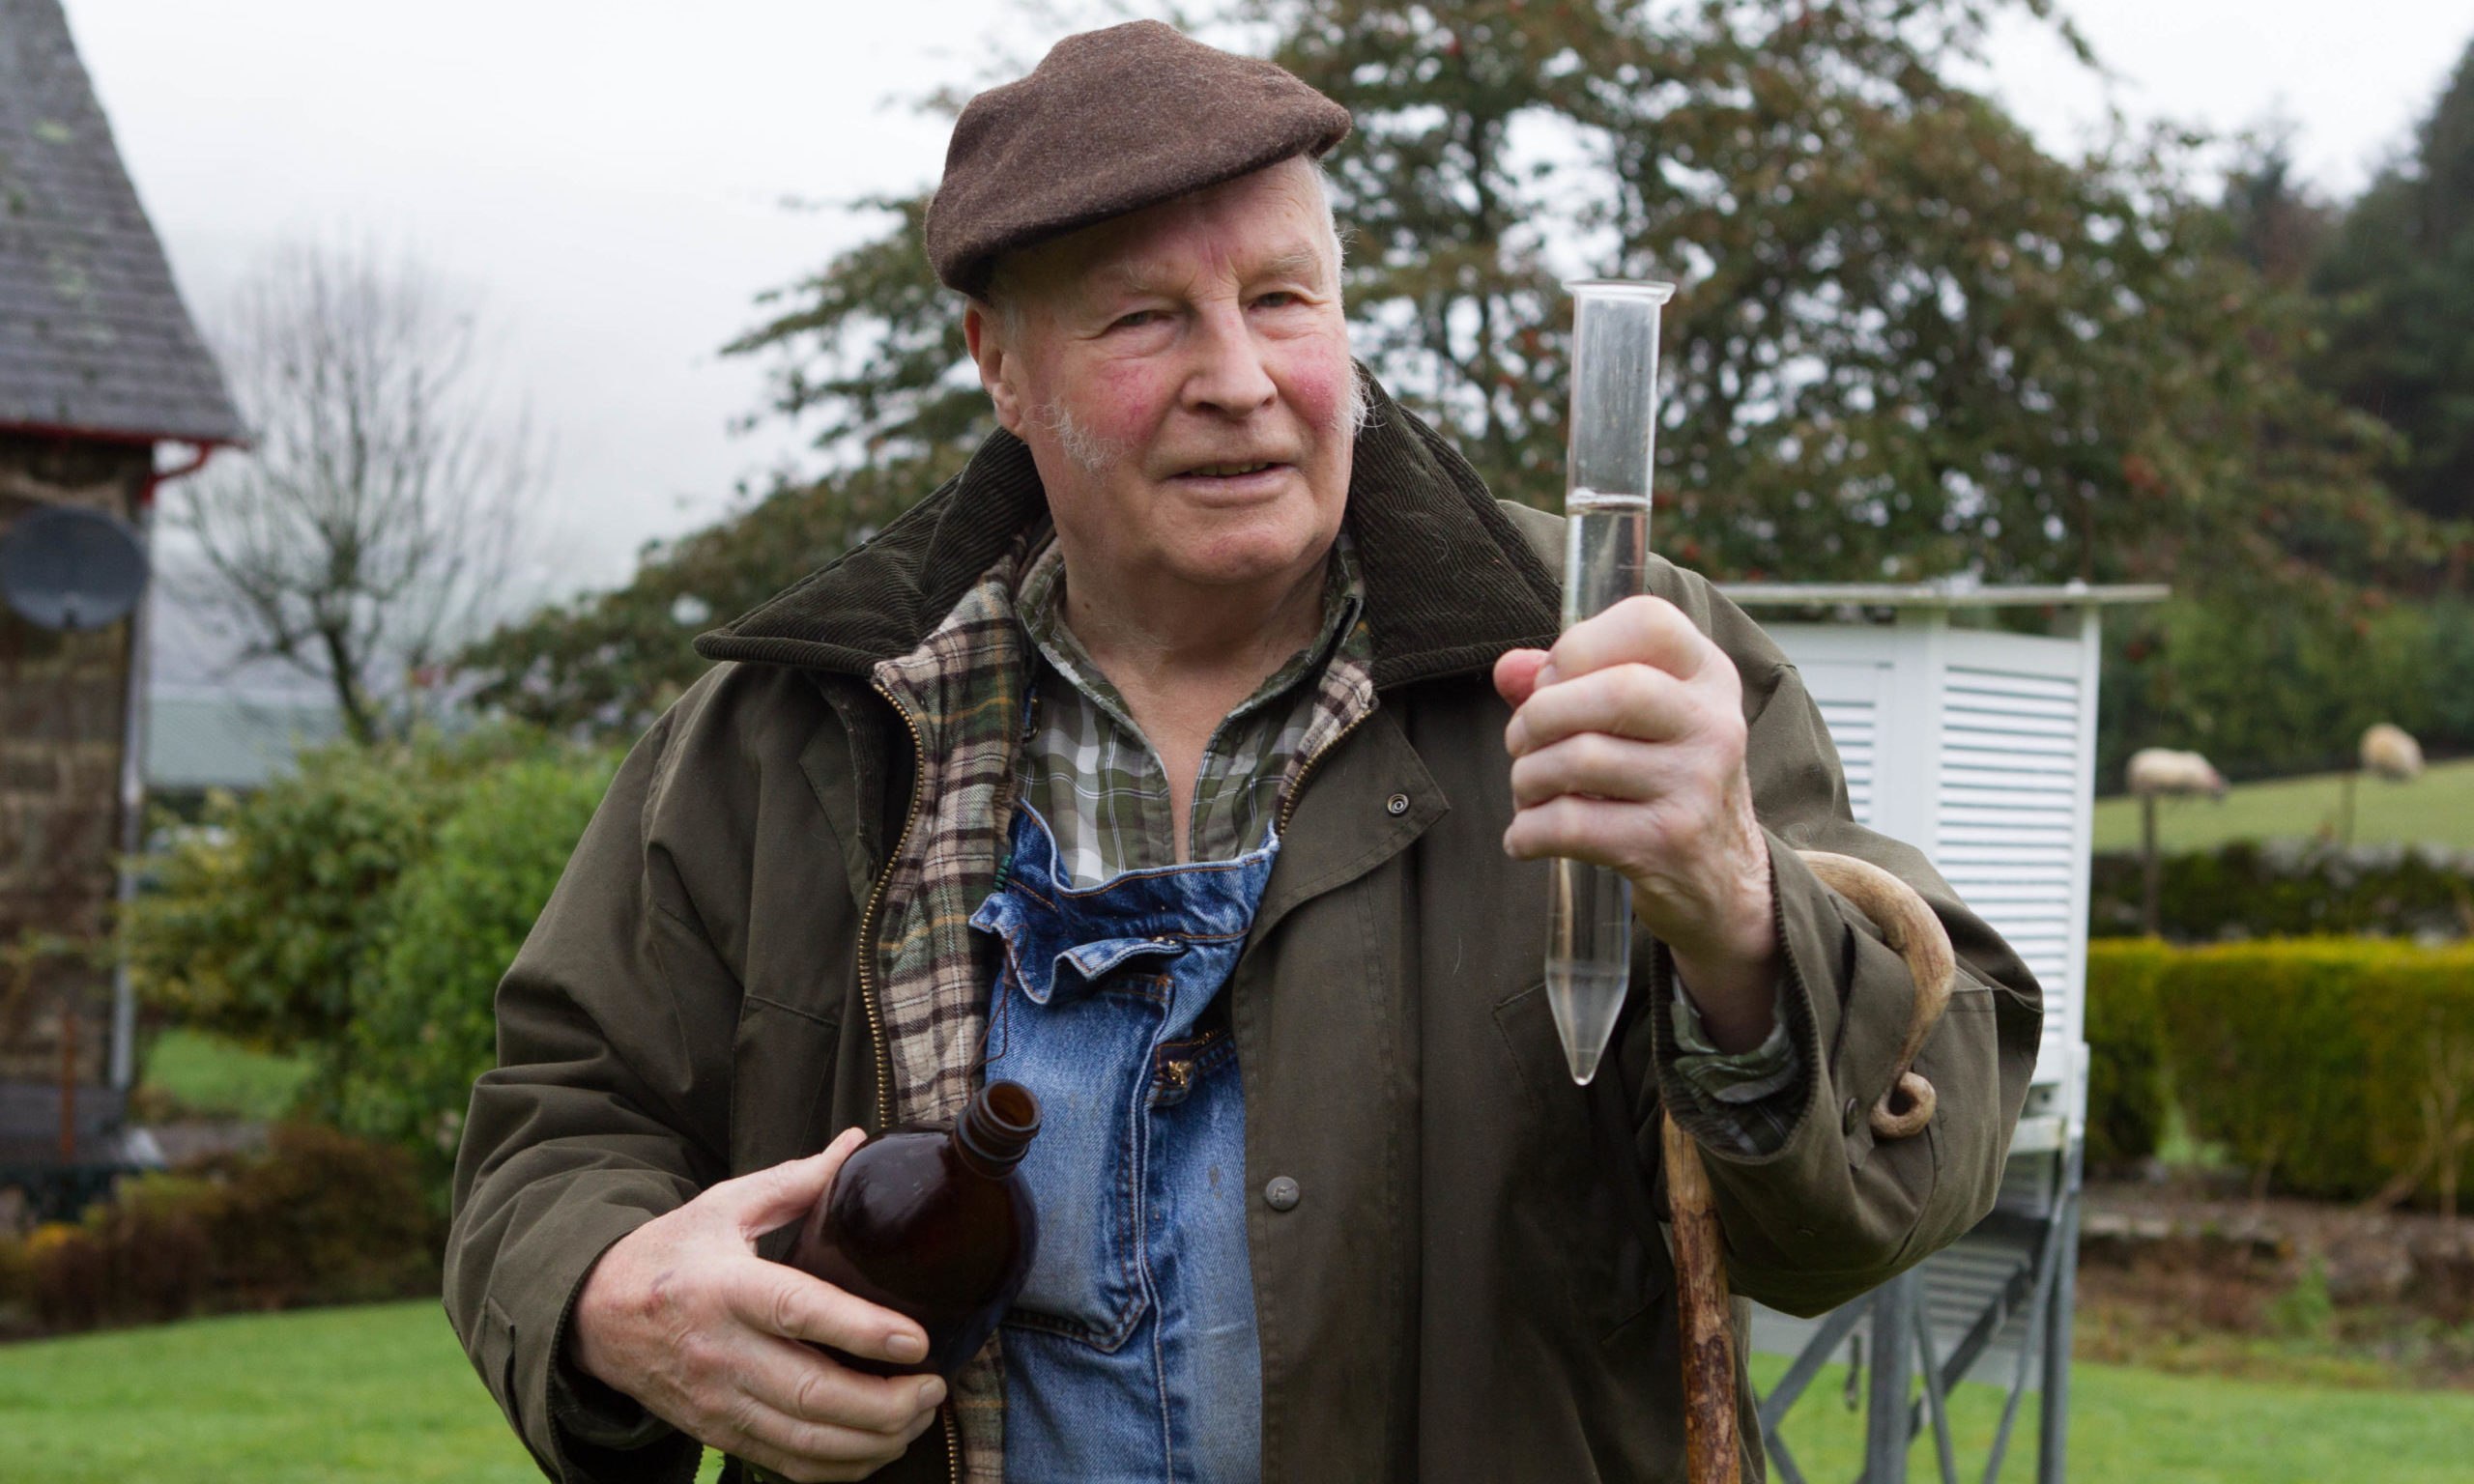 Mervyn collects data from his garden in 2016